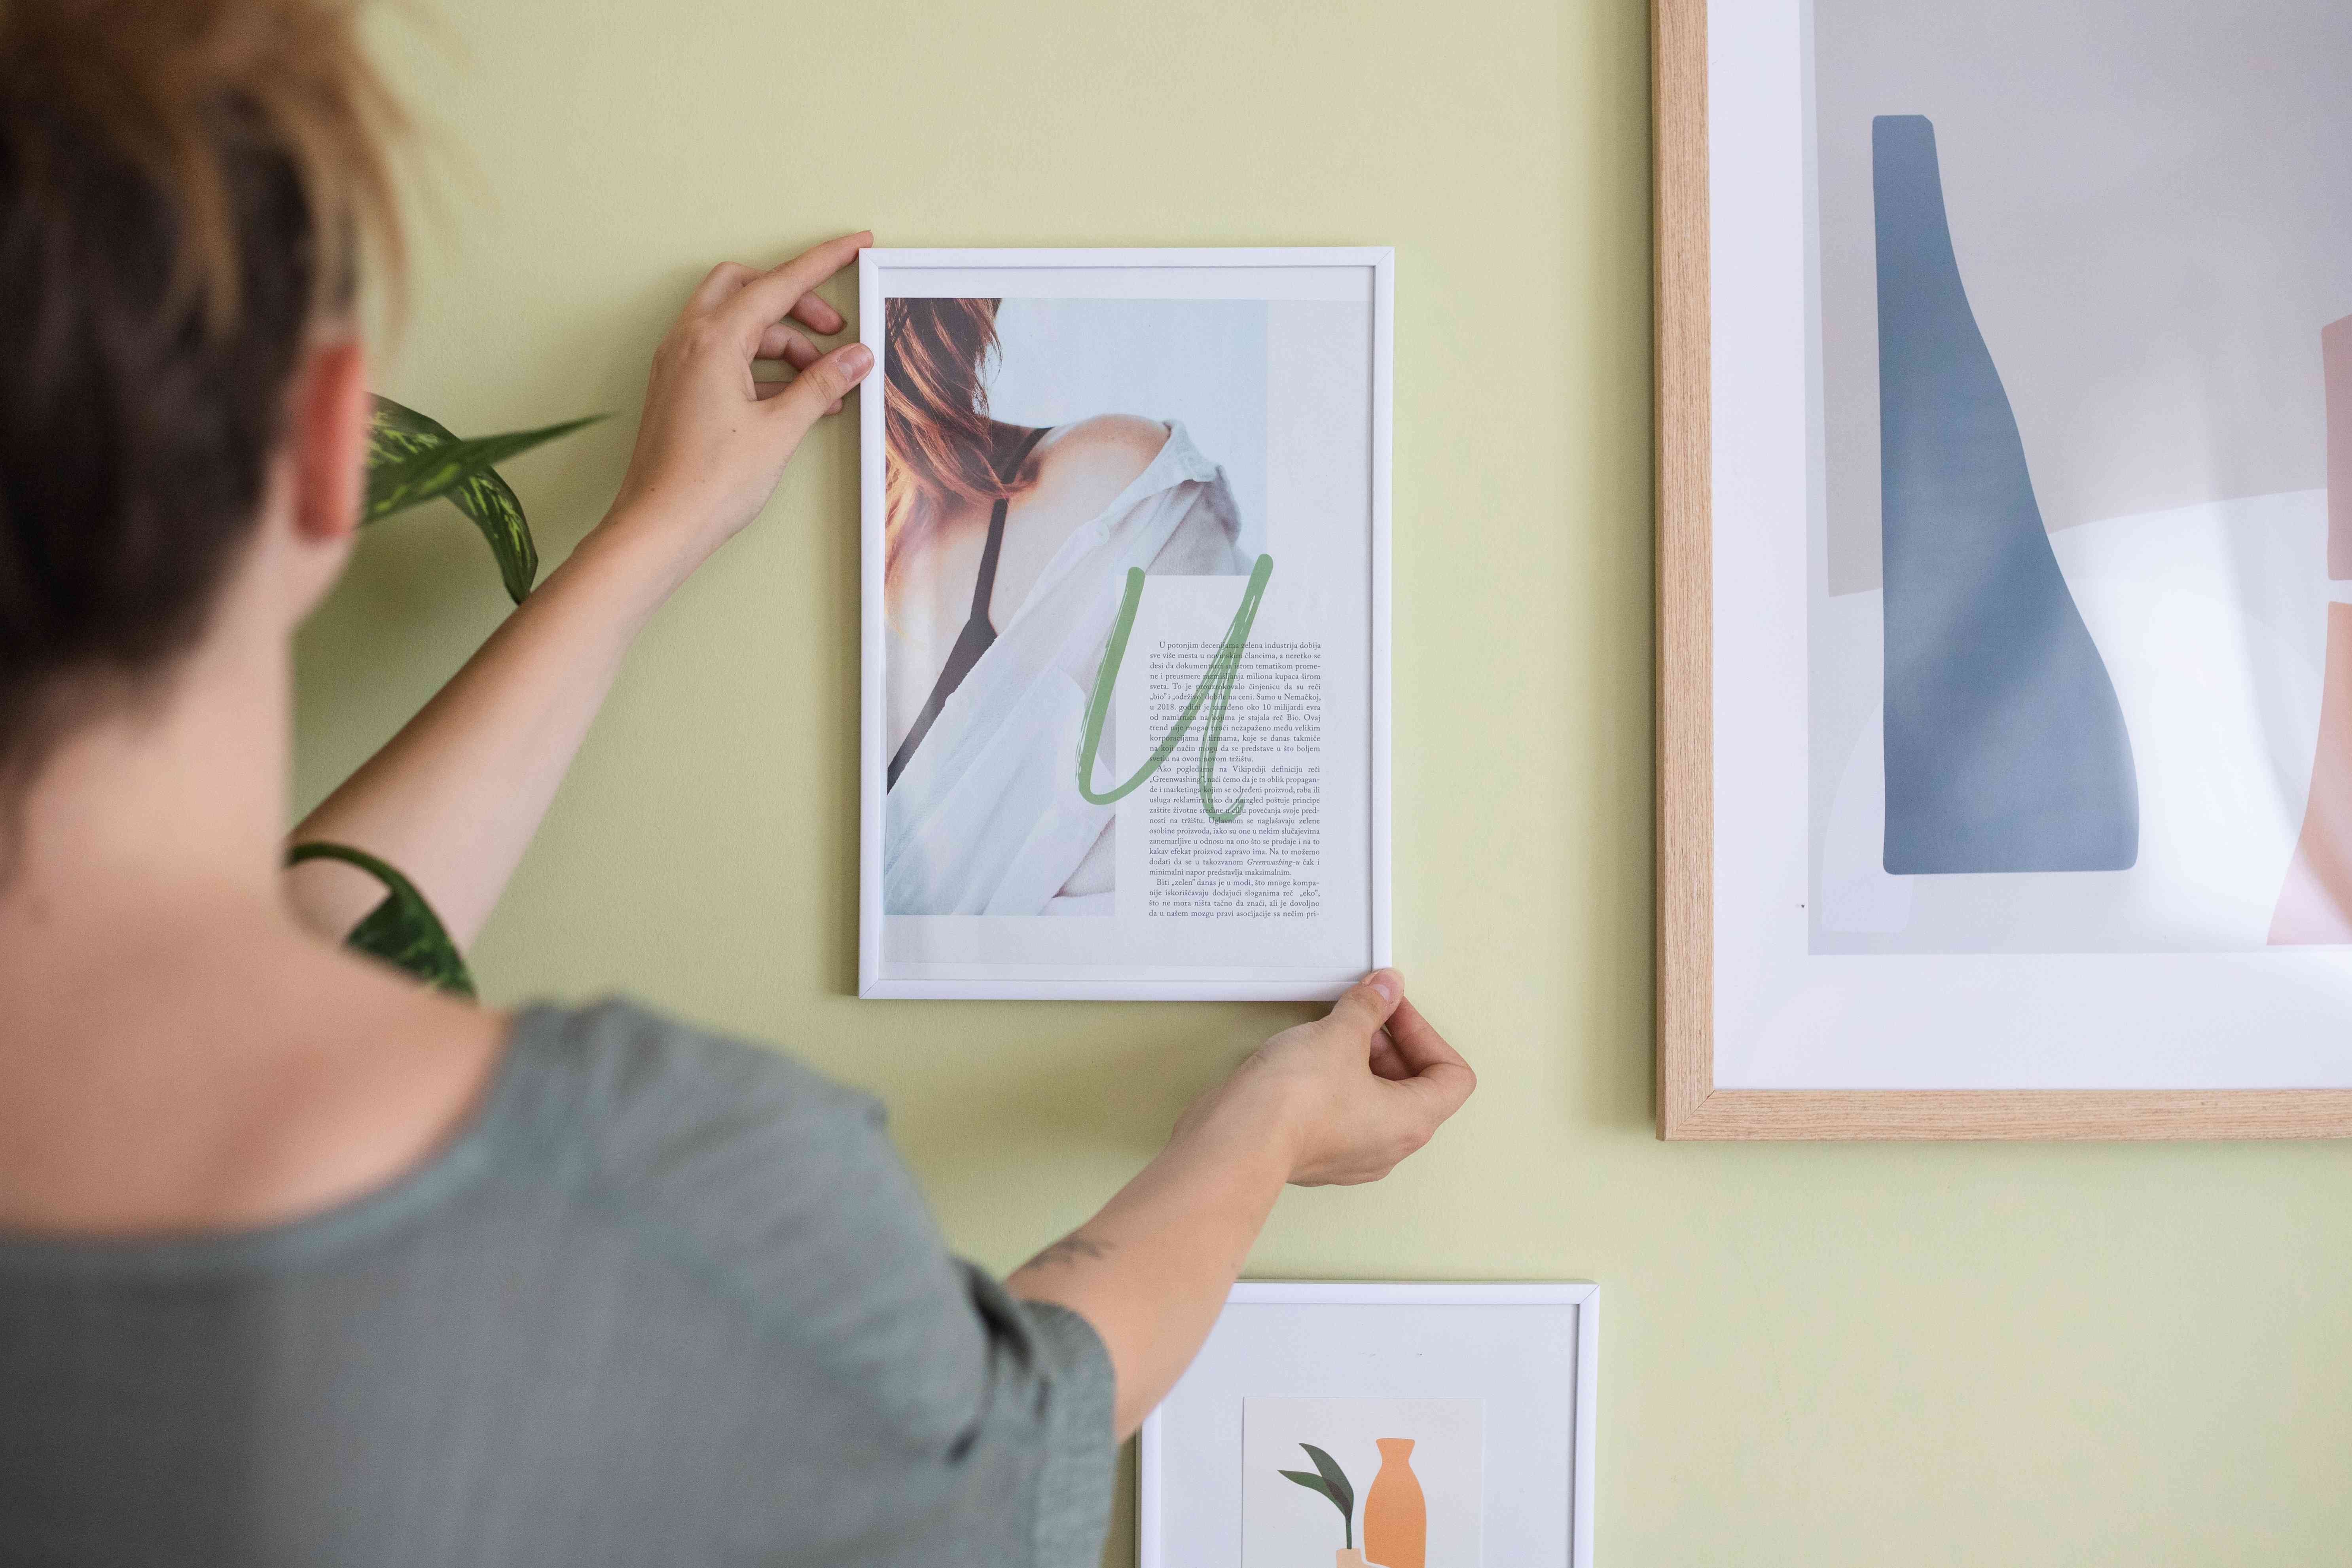 person hangs up framed piece of art cut out from magazine on pale green wall